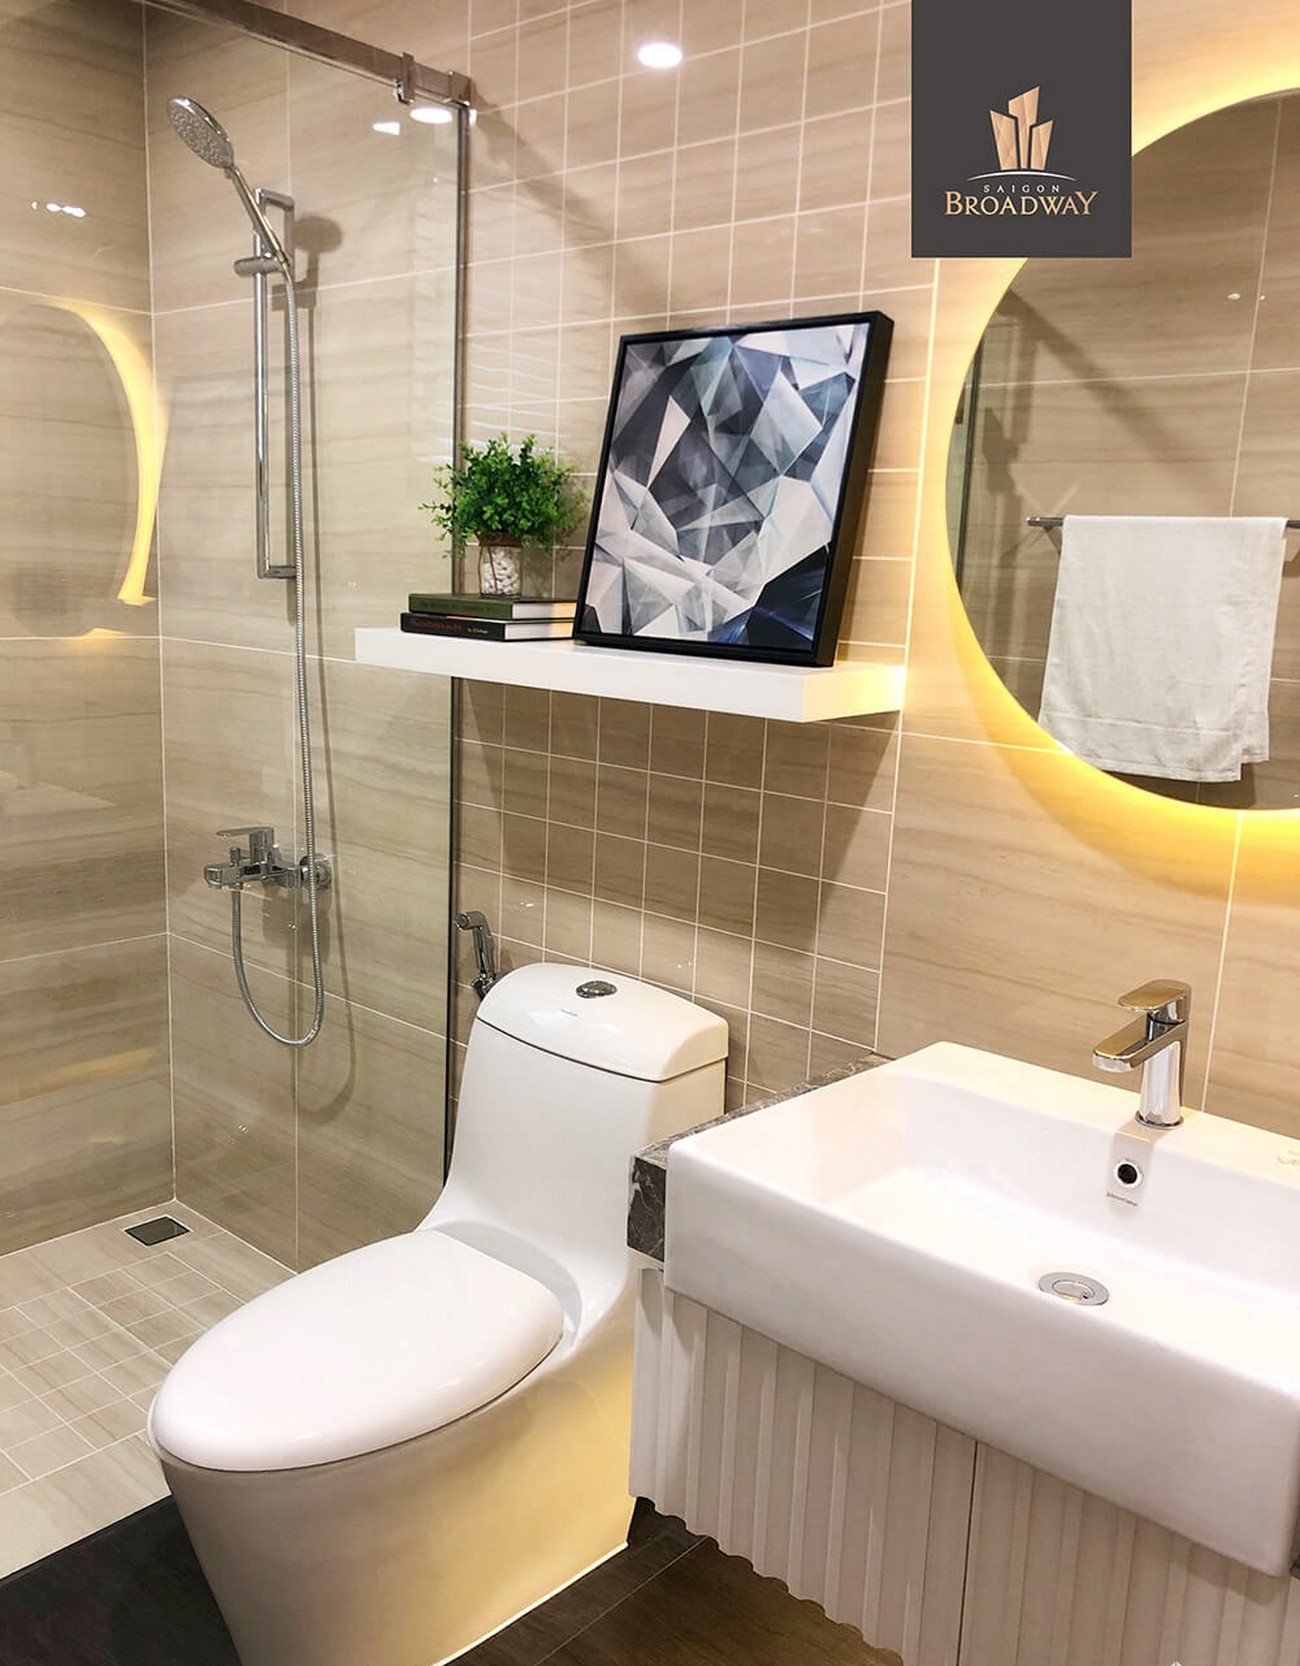 A bathroom with a toilet and sink  Description automatically generated with medium confidence